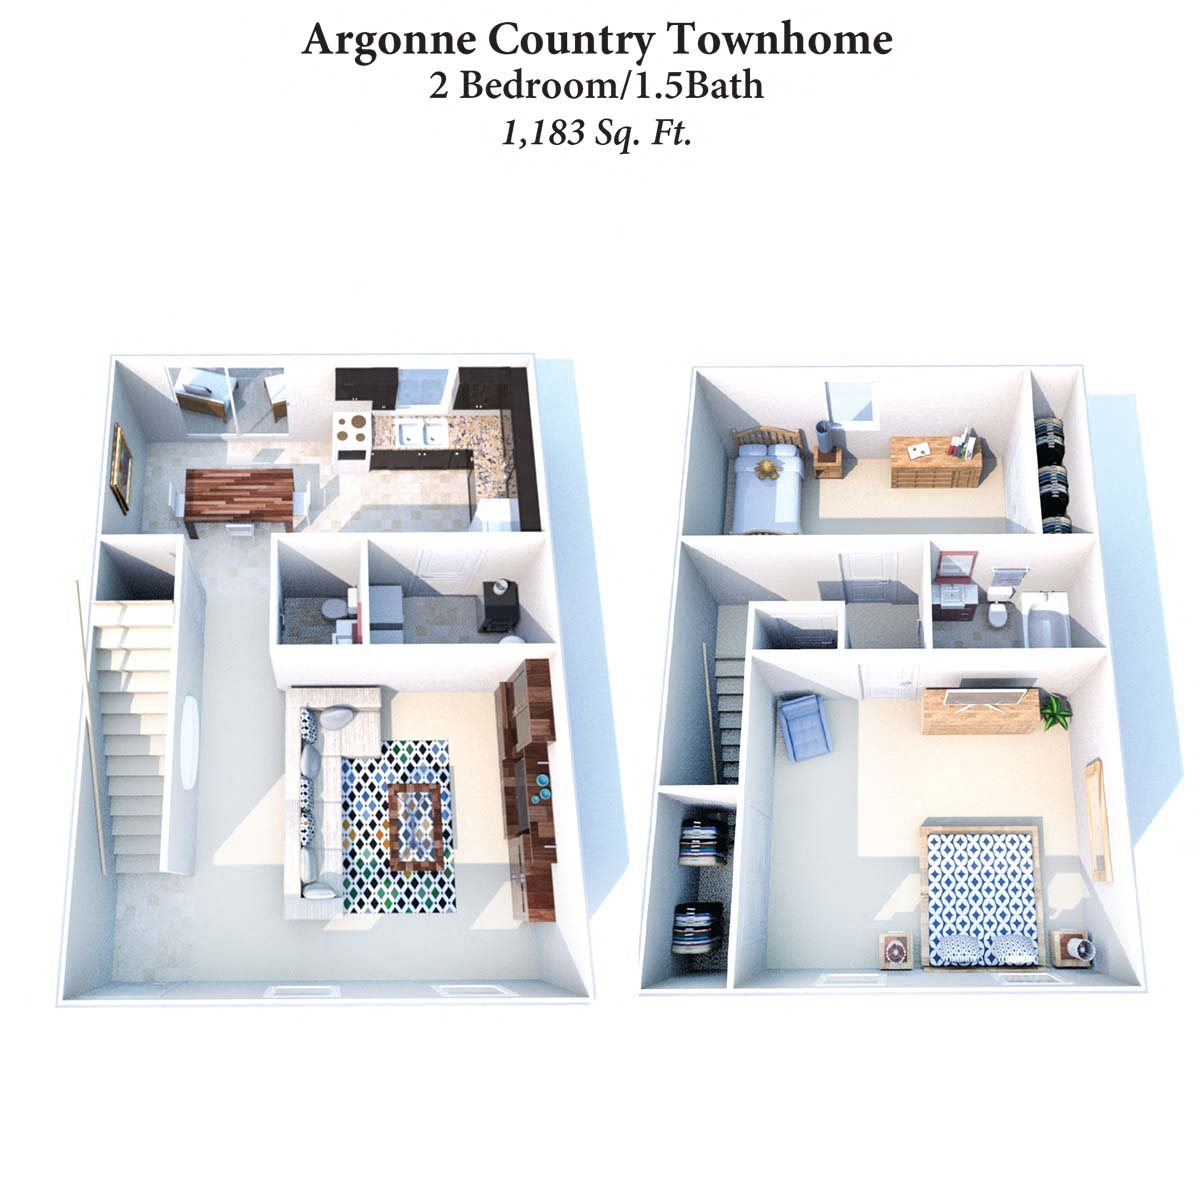 2B1.5B Argonne Townhome 1,1,83SqFt Floor Plan 9